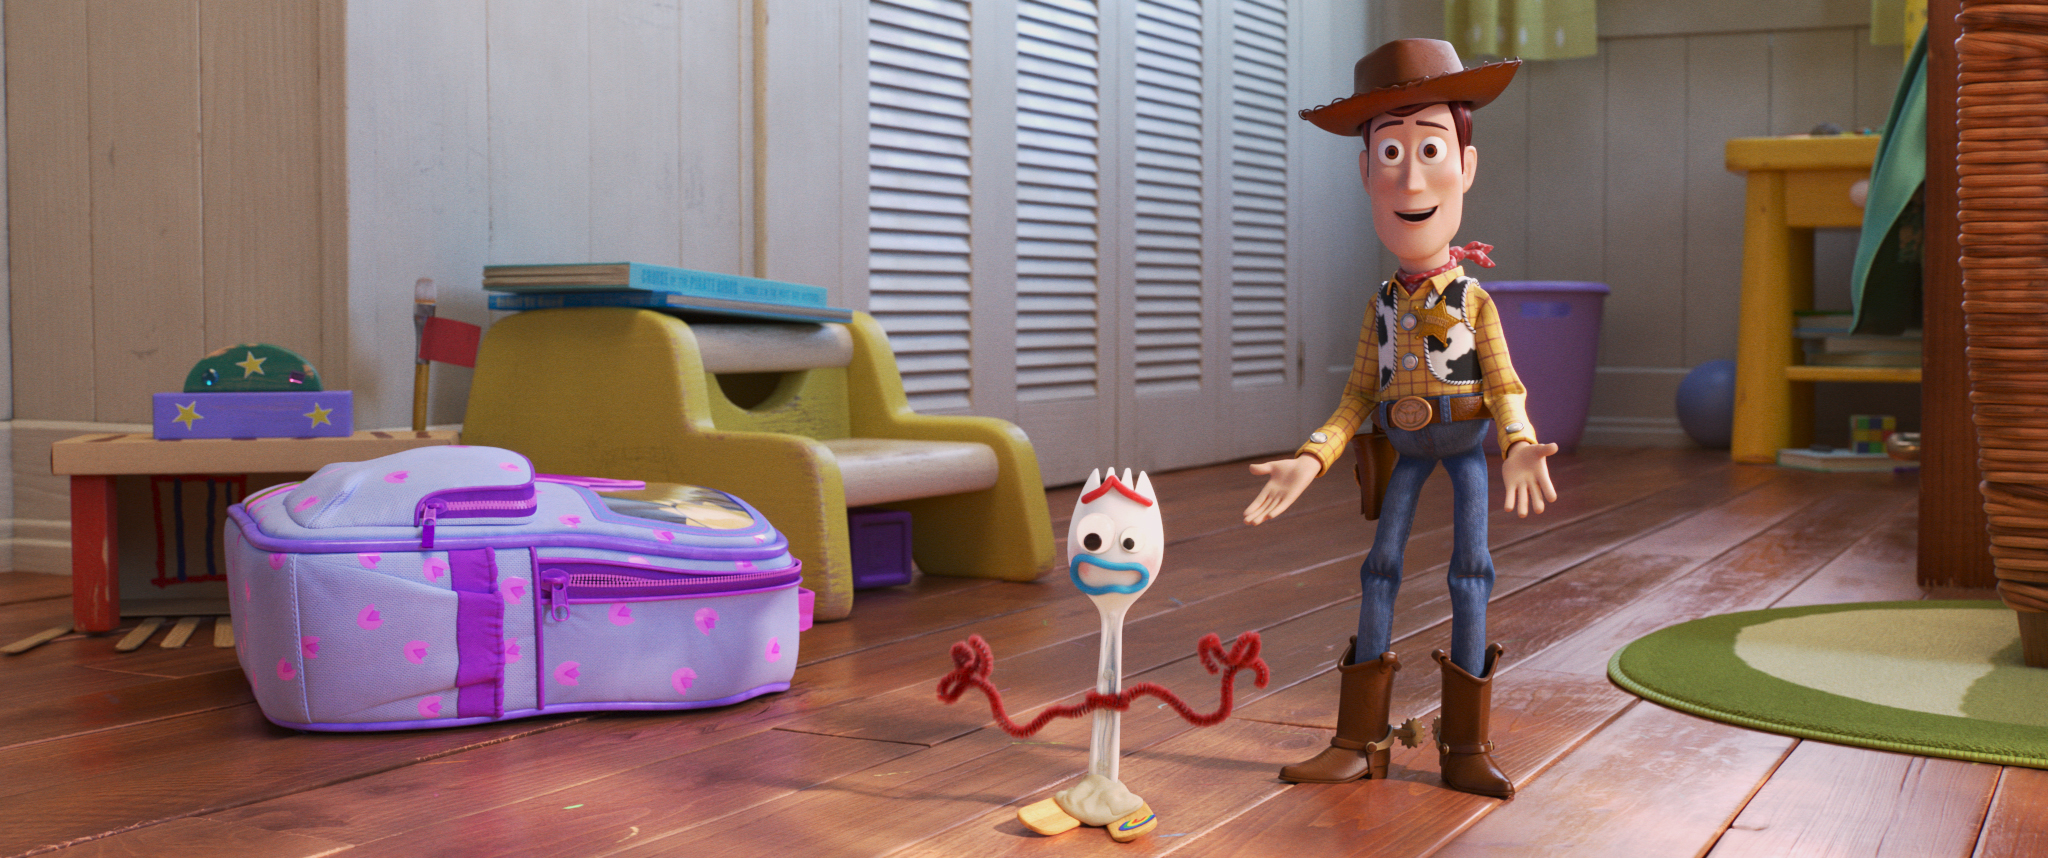 "Sheriff Woody (right, voiced by Tom Hanks) introduces his toy friends to Bonnie's new creation, Forky (left, voiced by Tony Hale), in Disney/Pixar's ""Toy Story 4."" (Image courtesy of Disney/Pixar."